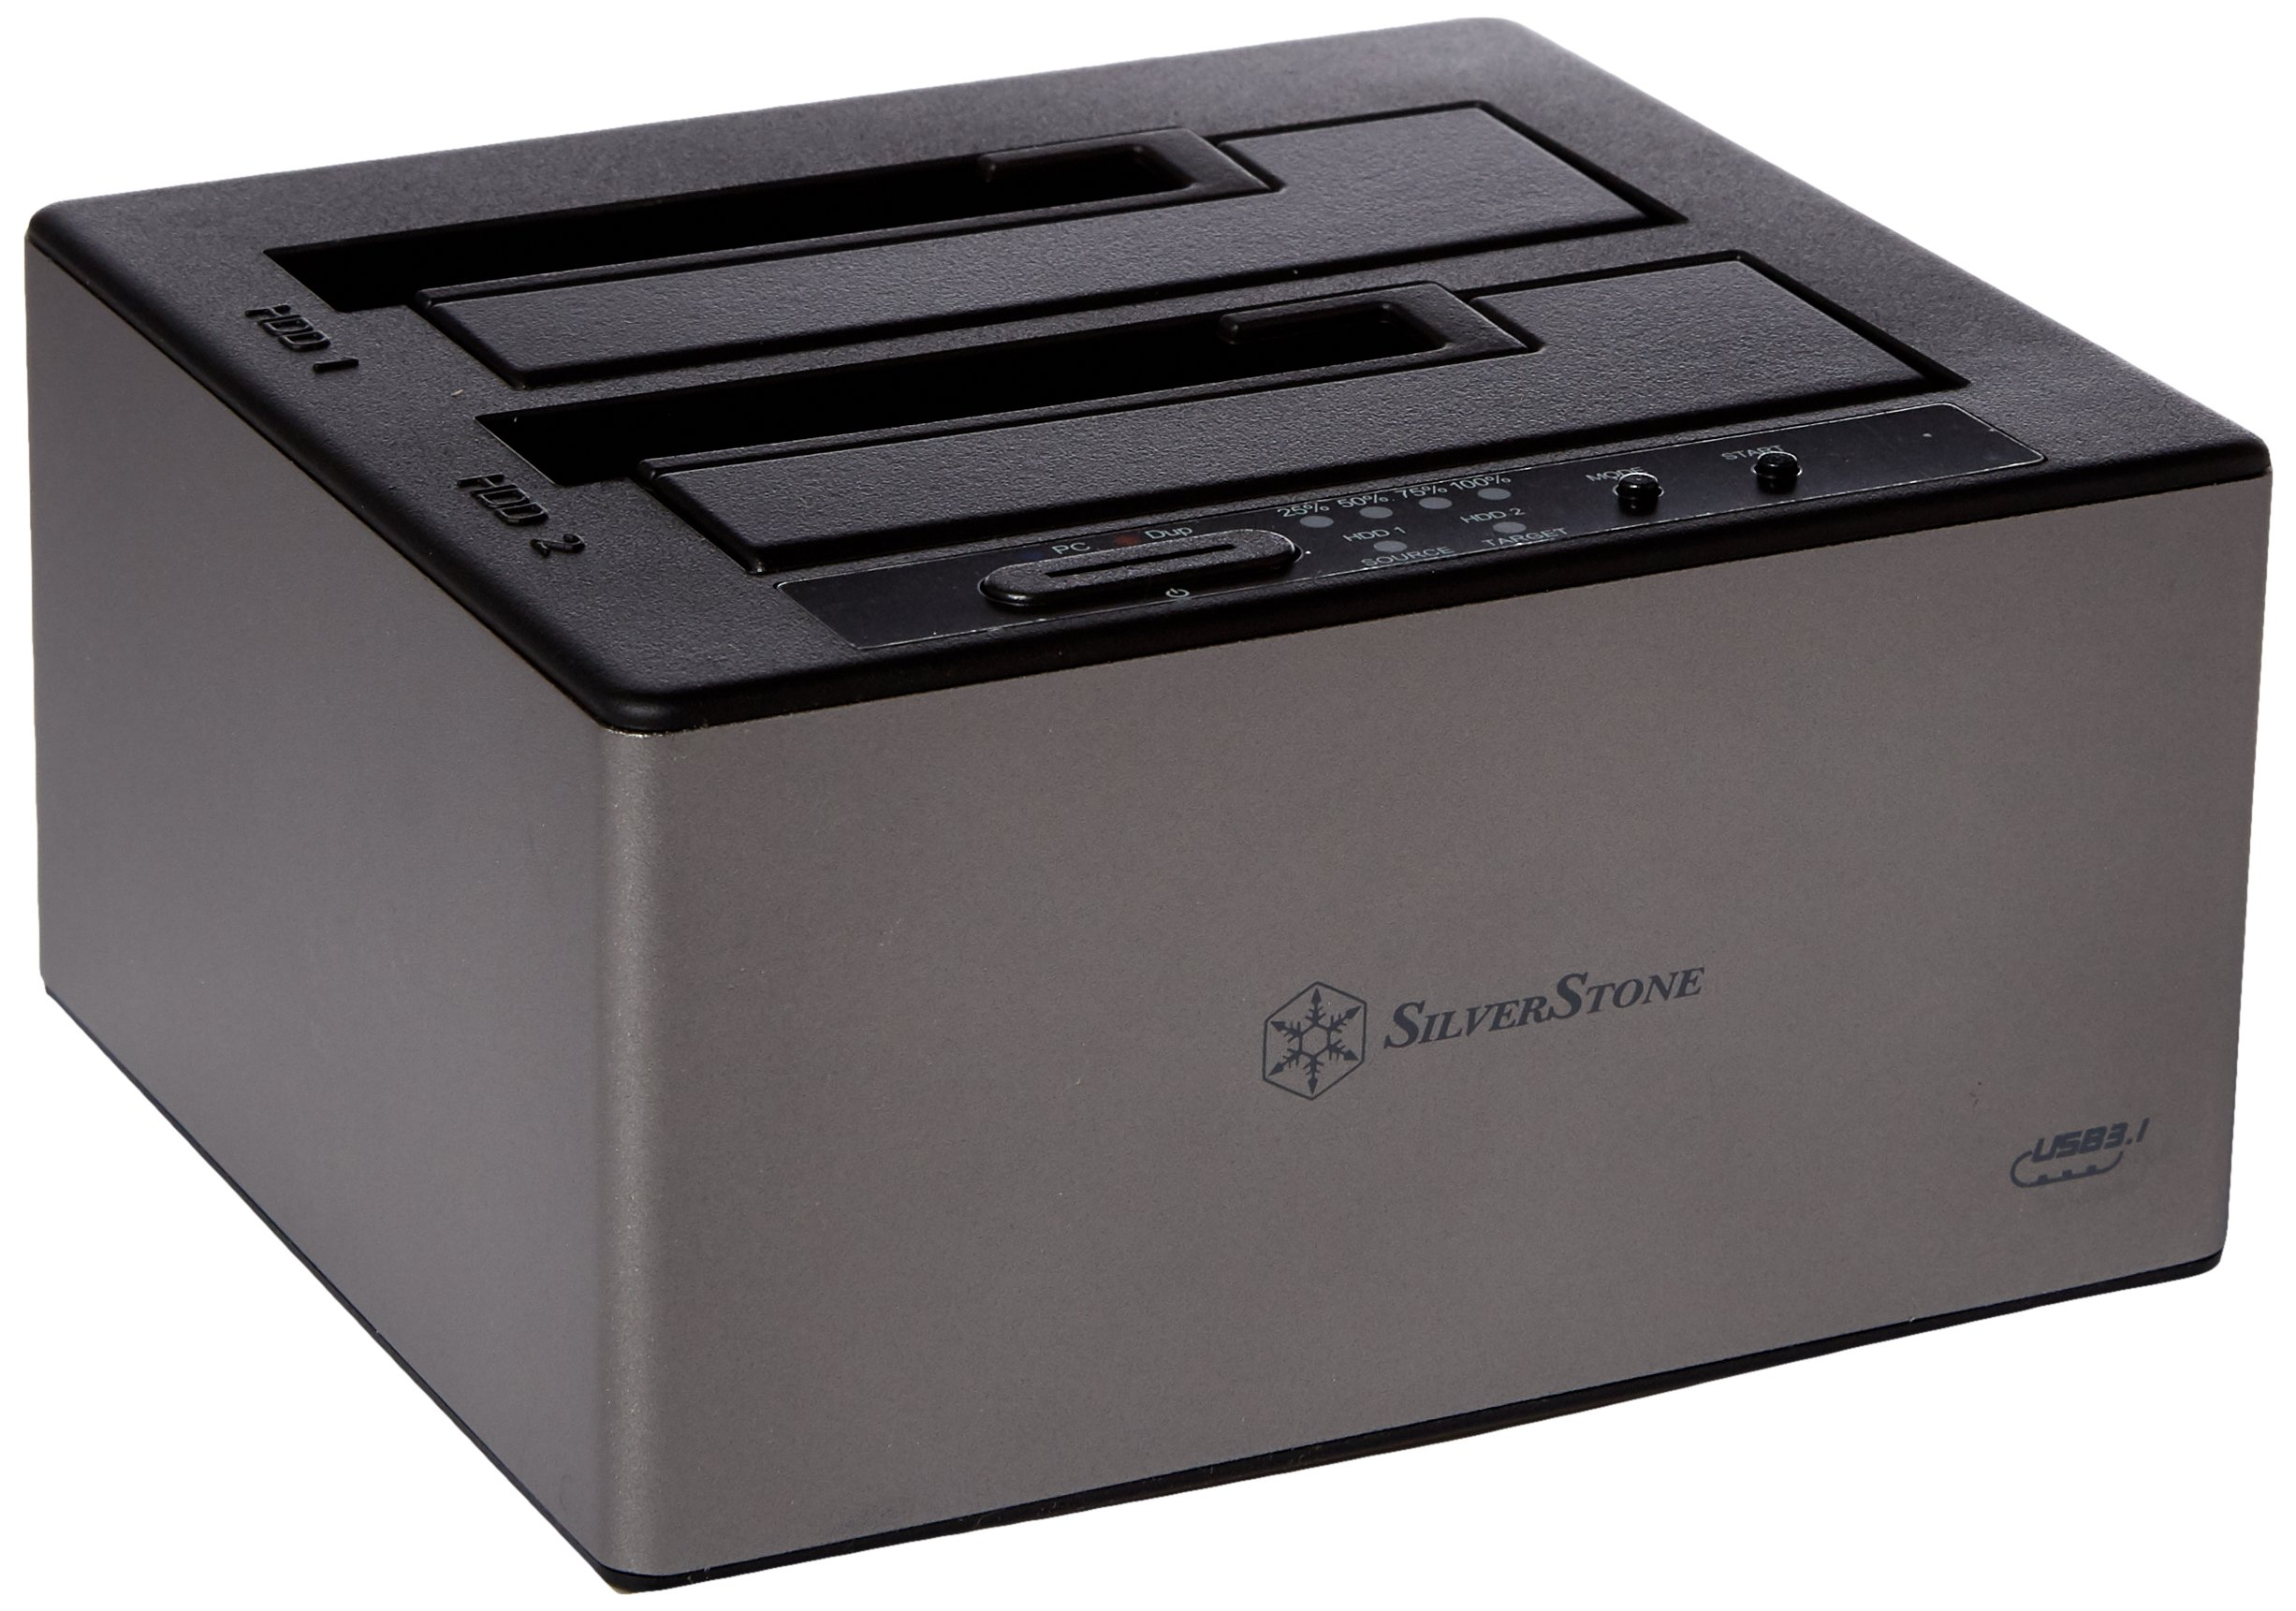 SilverStone Technology 3.5'' and 2.5'' External Hard Drive Dock with USB 3.1 Type- C Gen 2,  Supports Offline Clone and JBOD modes with Hot-Swap TS12C